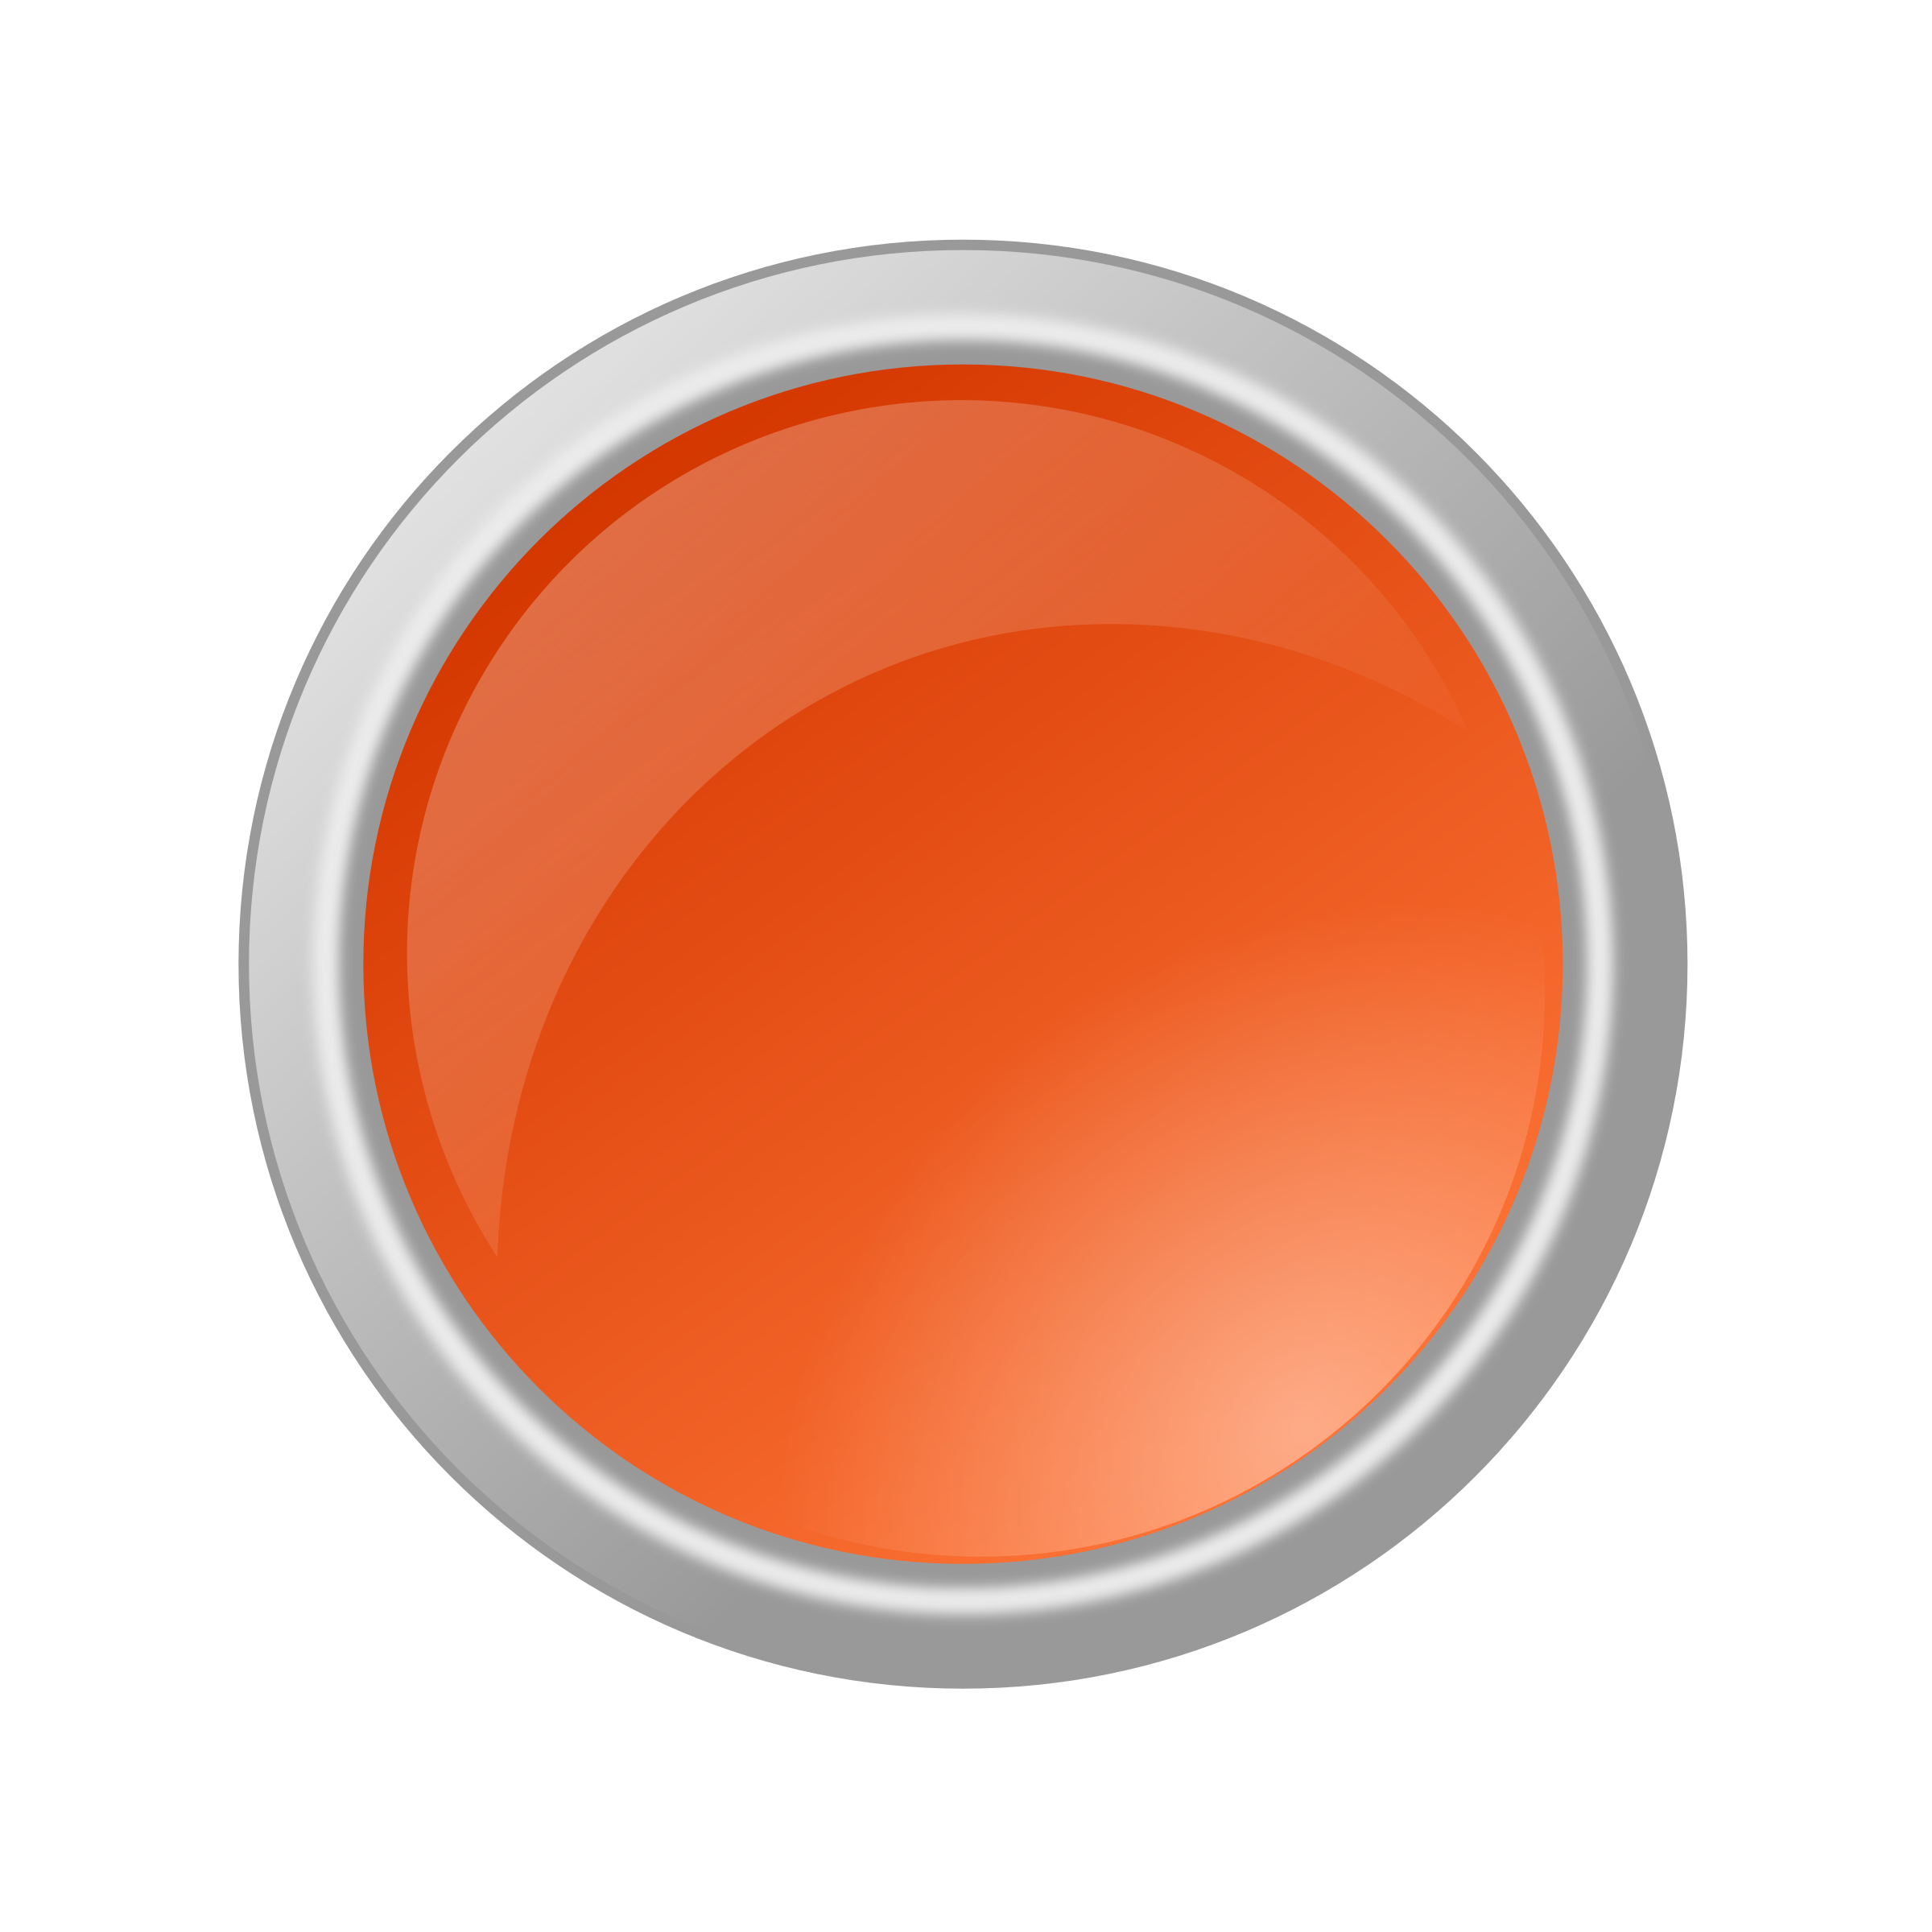 Glossy Orange Button by rygle